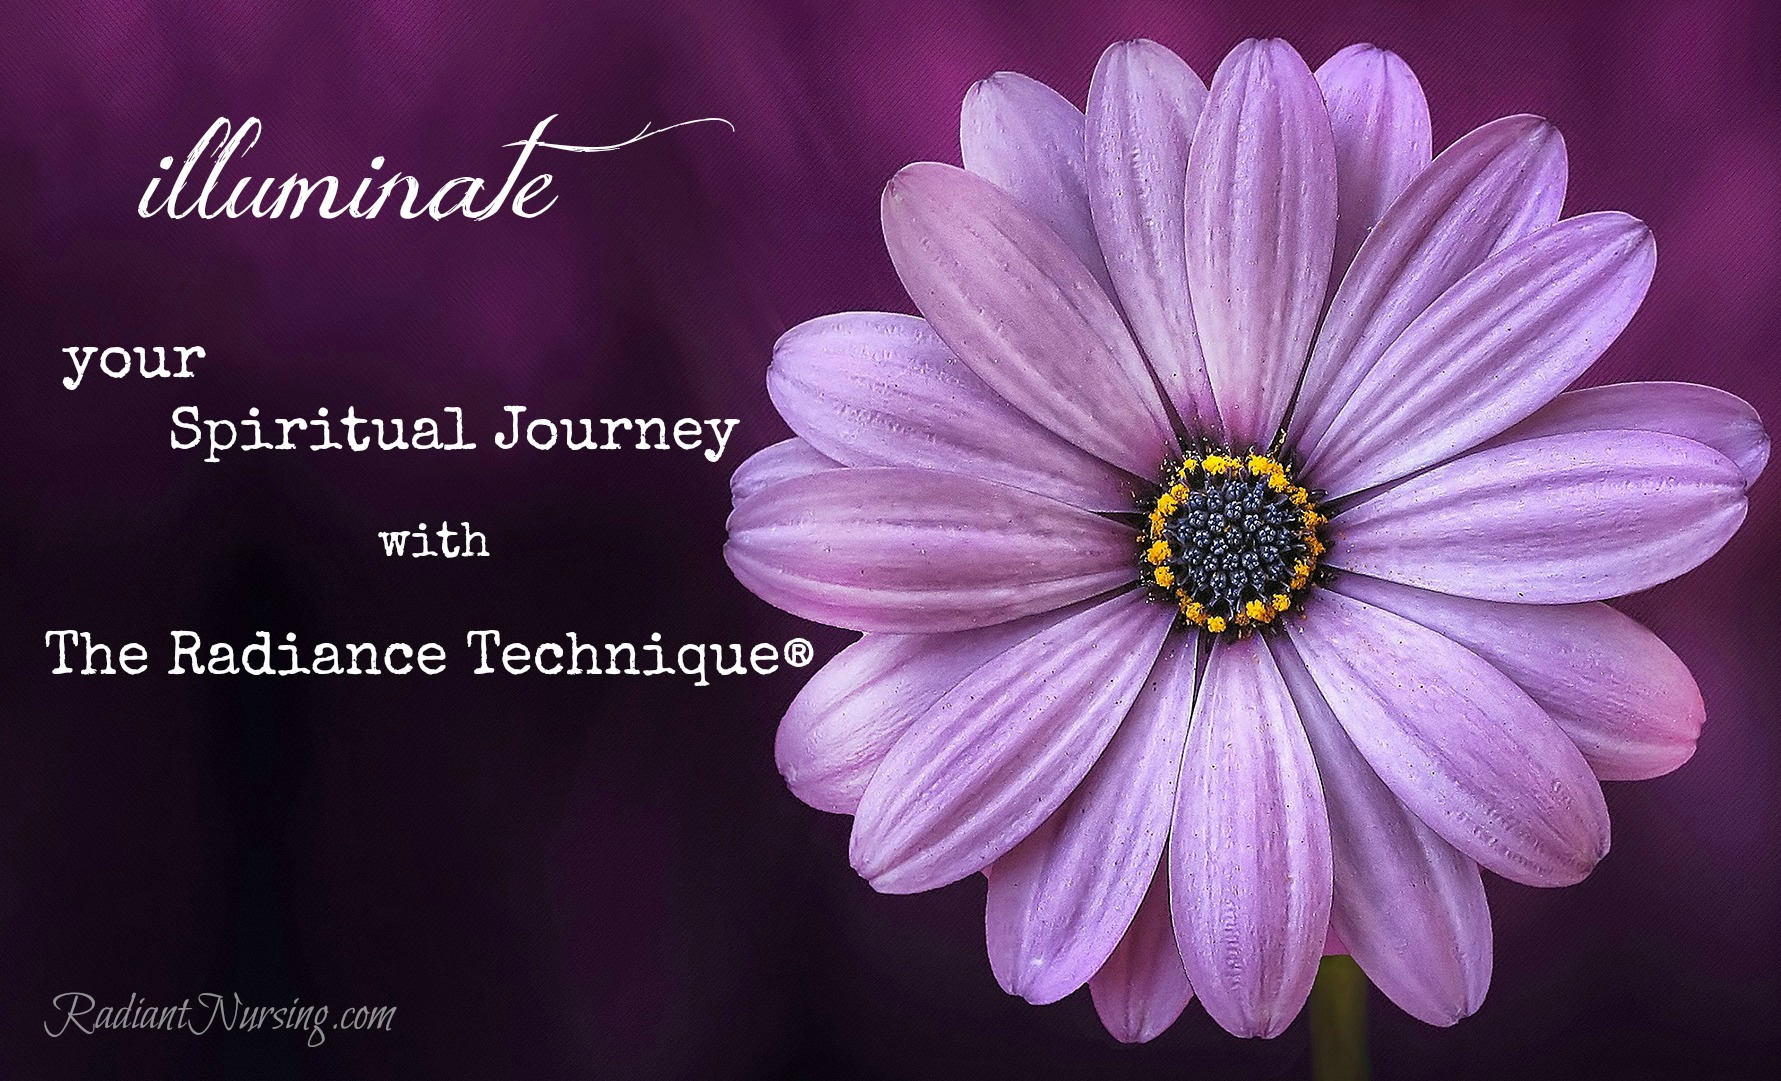 illuminate your spiritual journey with The Radiance Technique®.